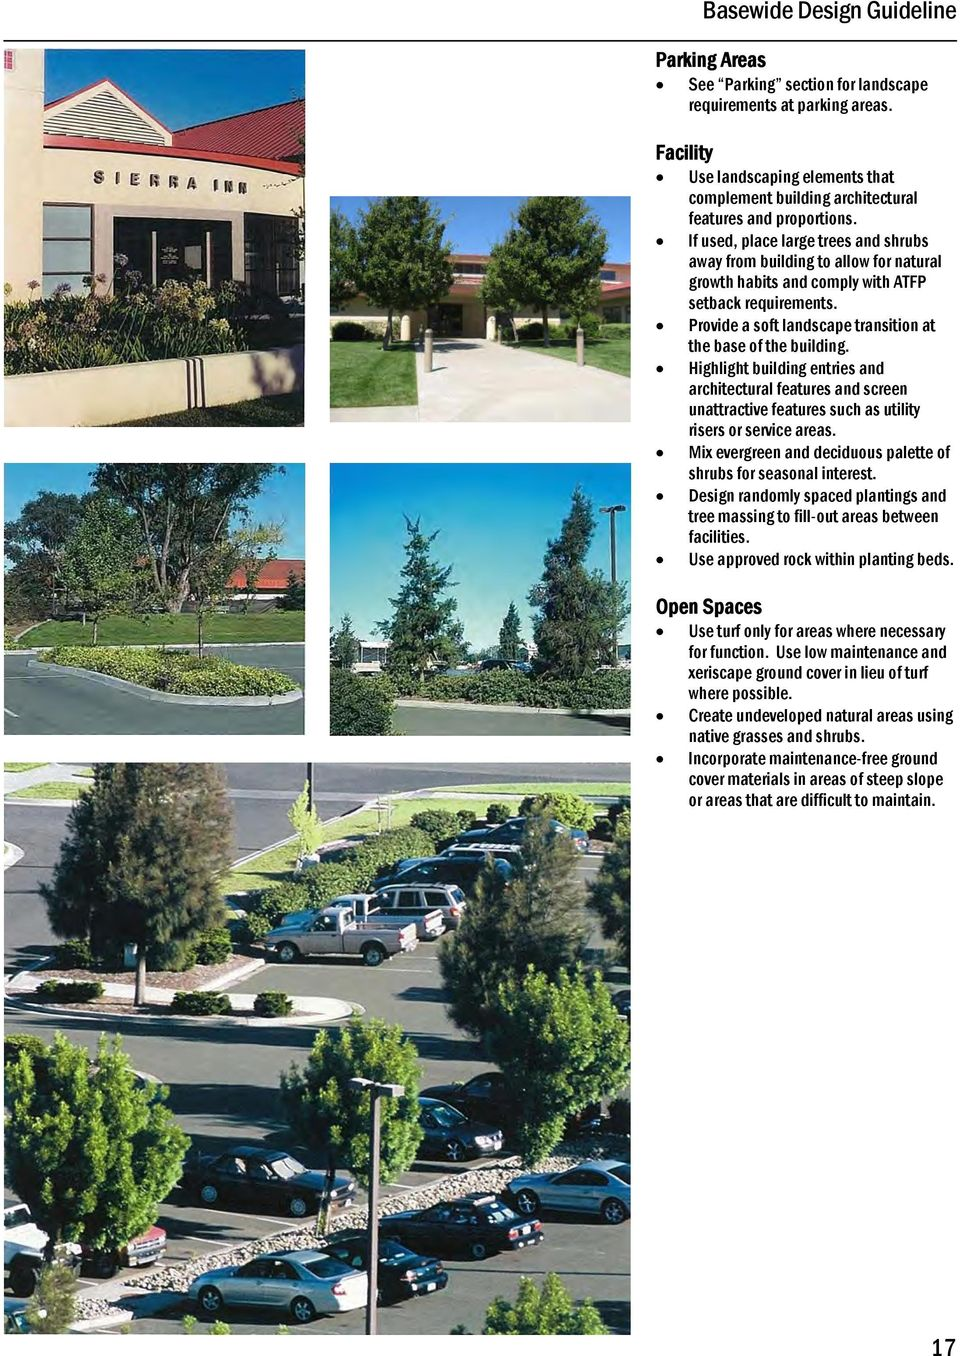 If used, place large trees and shrubs away from building to allow for natural growth habits and comply with ATFP setback requirements. Provide a soft landscape transition at the base of the building.